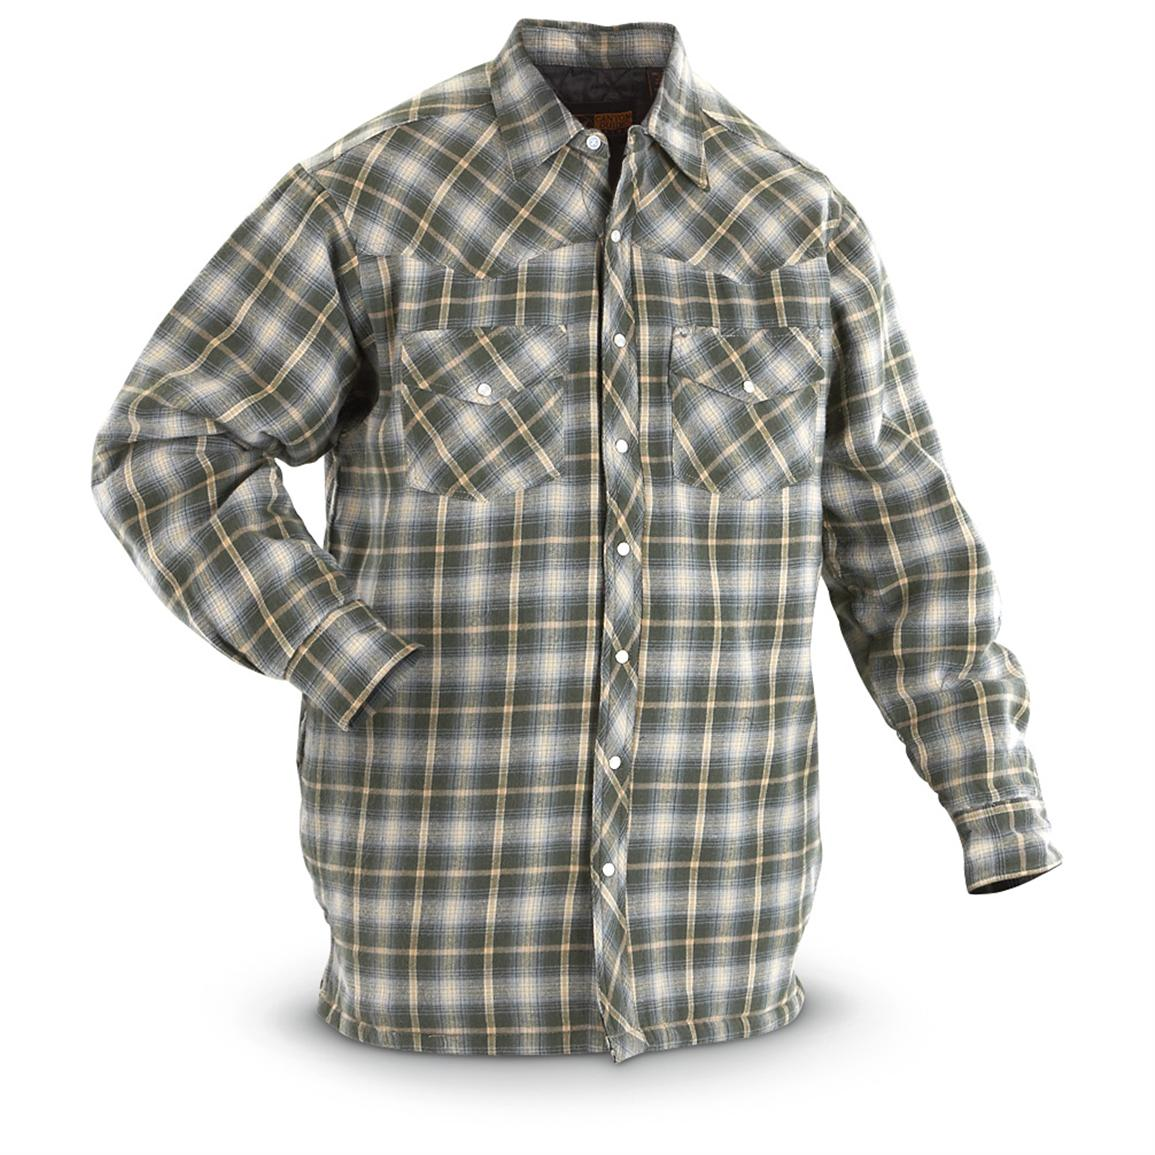 Chamois Shirts | Quilted Flannel Shirt | Lined Flannel Shirt Jacket